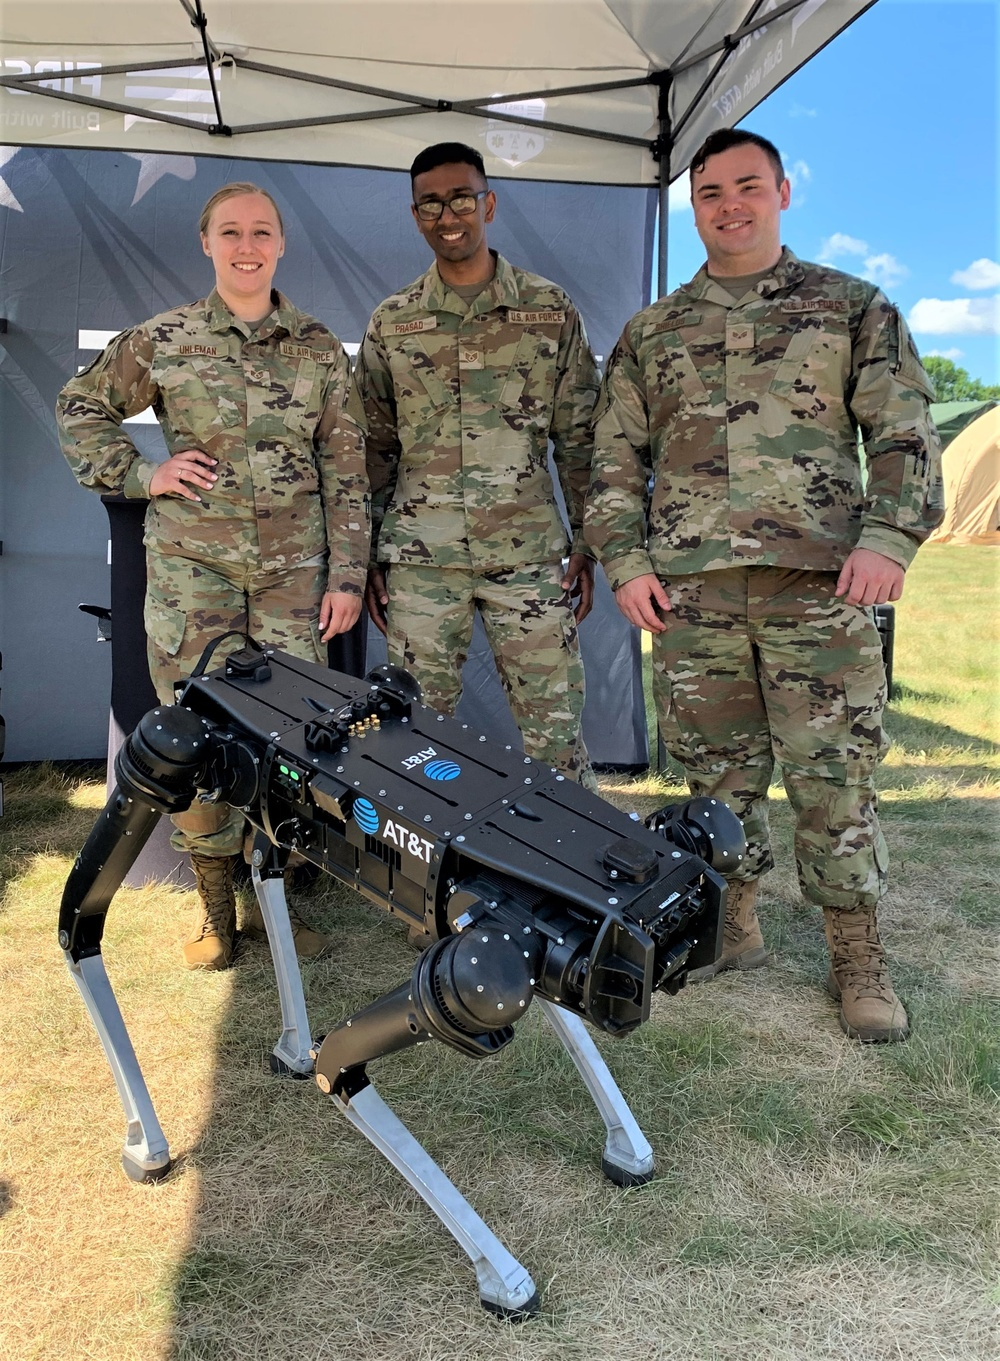 234th IS and 222nd ISS join forces at PATRIOT 21'